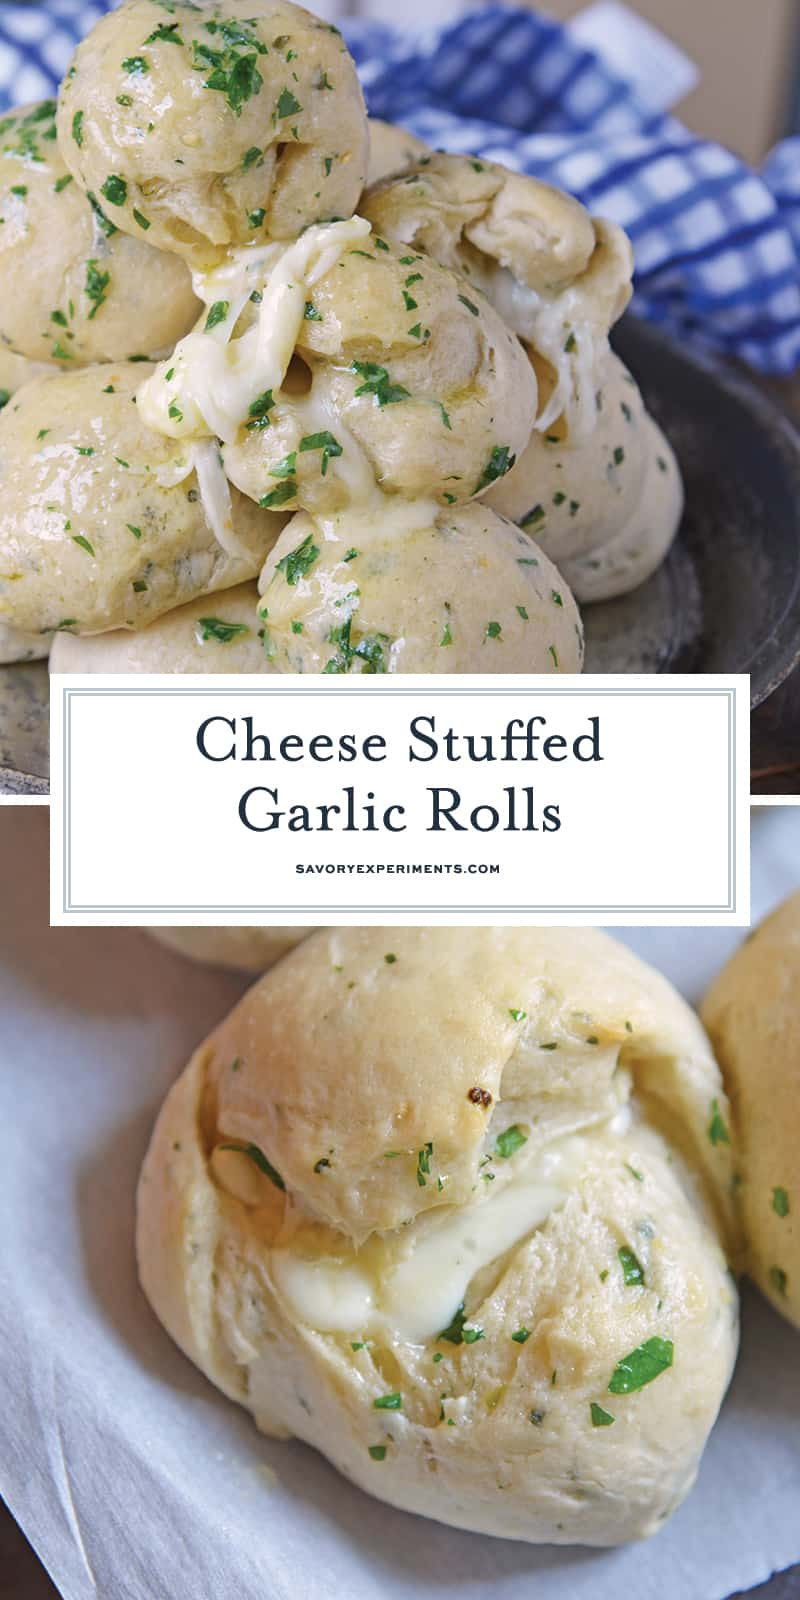 These Cheese Stuffed Garlic Rolls are delicious garlic and parsley rolls stuffed with gooey mozzarella cheese. Eat them plain or with a side of marinara. #cheesestuffedgarlicrolls #garlicrolls #mozzarella www.savoryexperiments.com